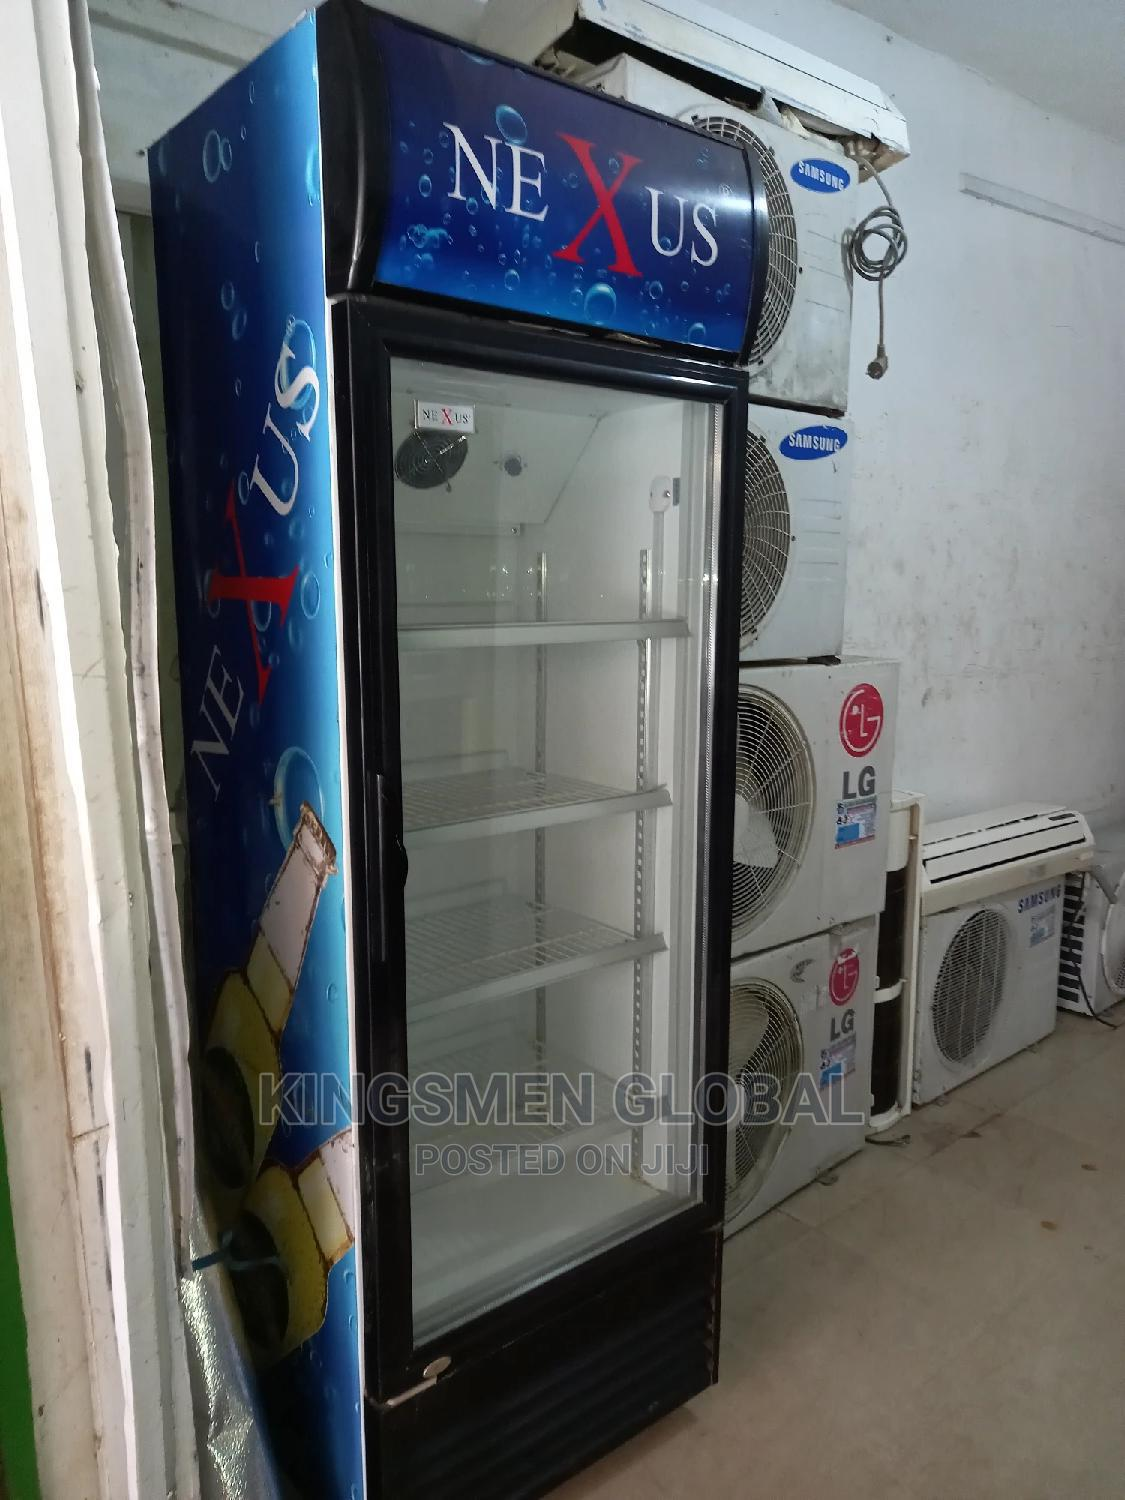 Nexus Quality Drink Chiller 450litre